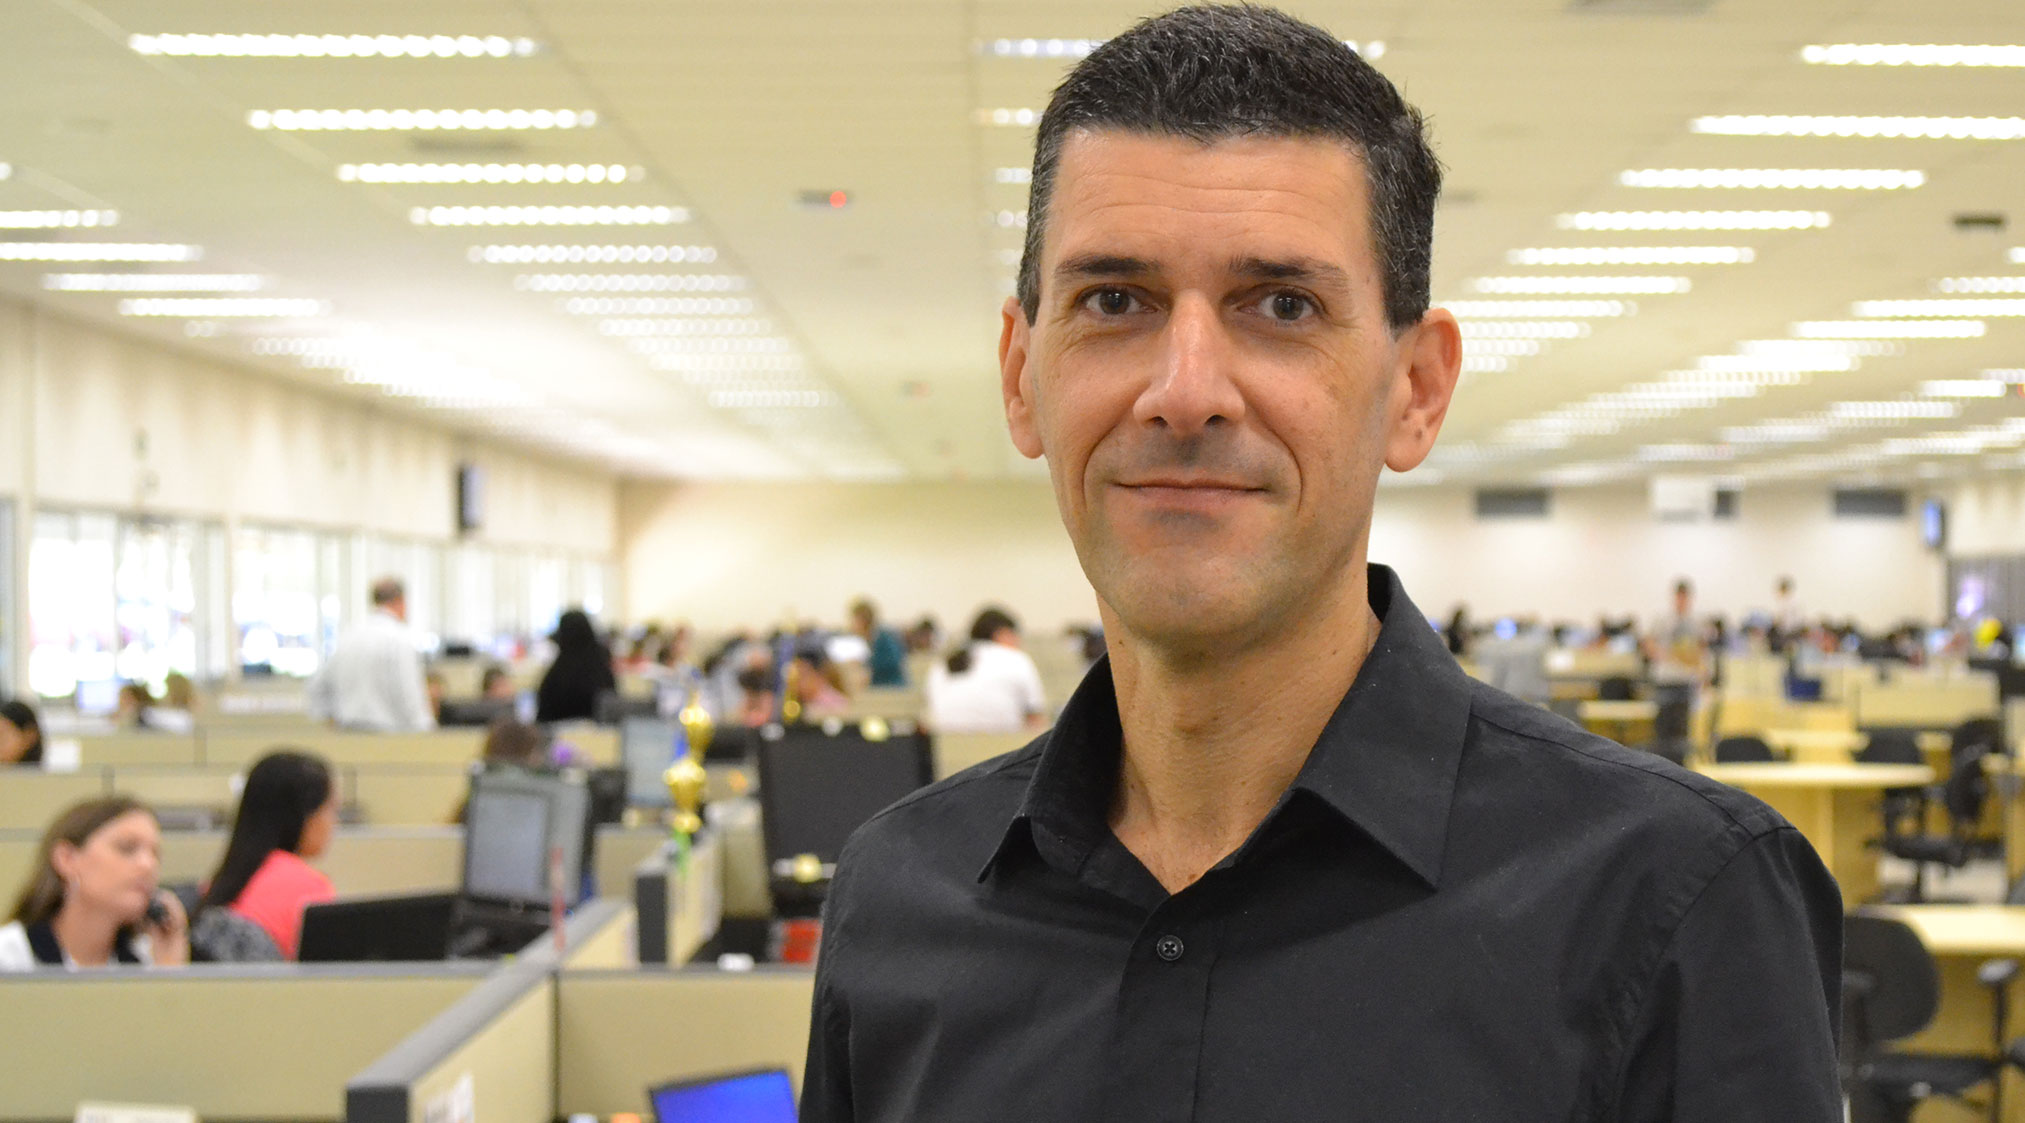 Confira a entrevista de Marcelo Duarte ao Shared Services Connection